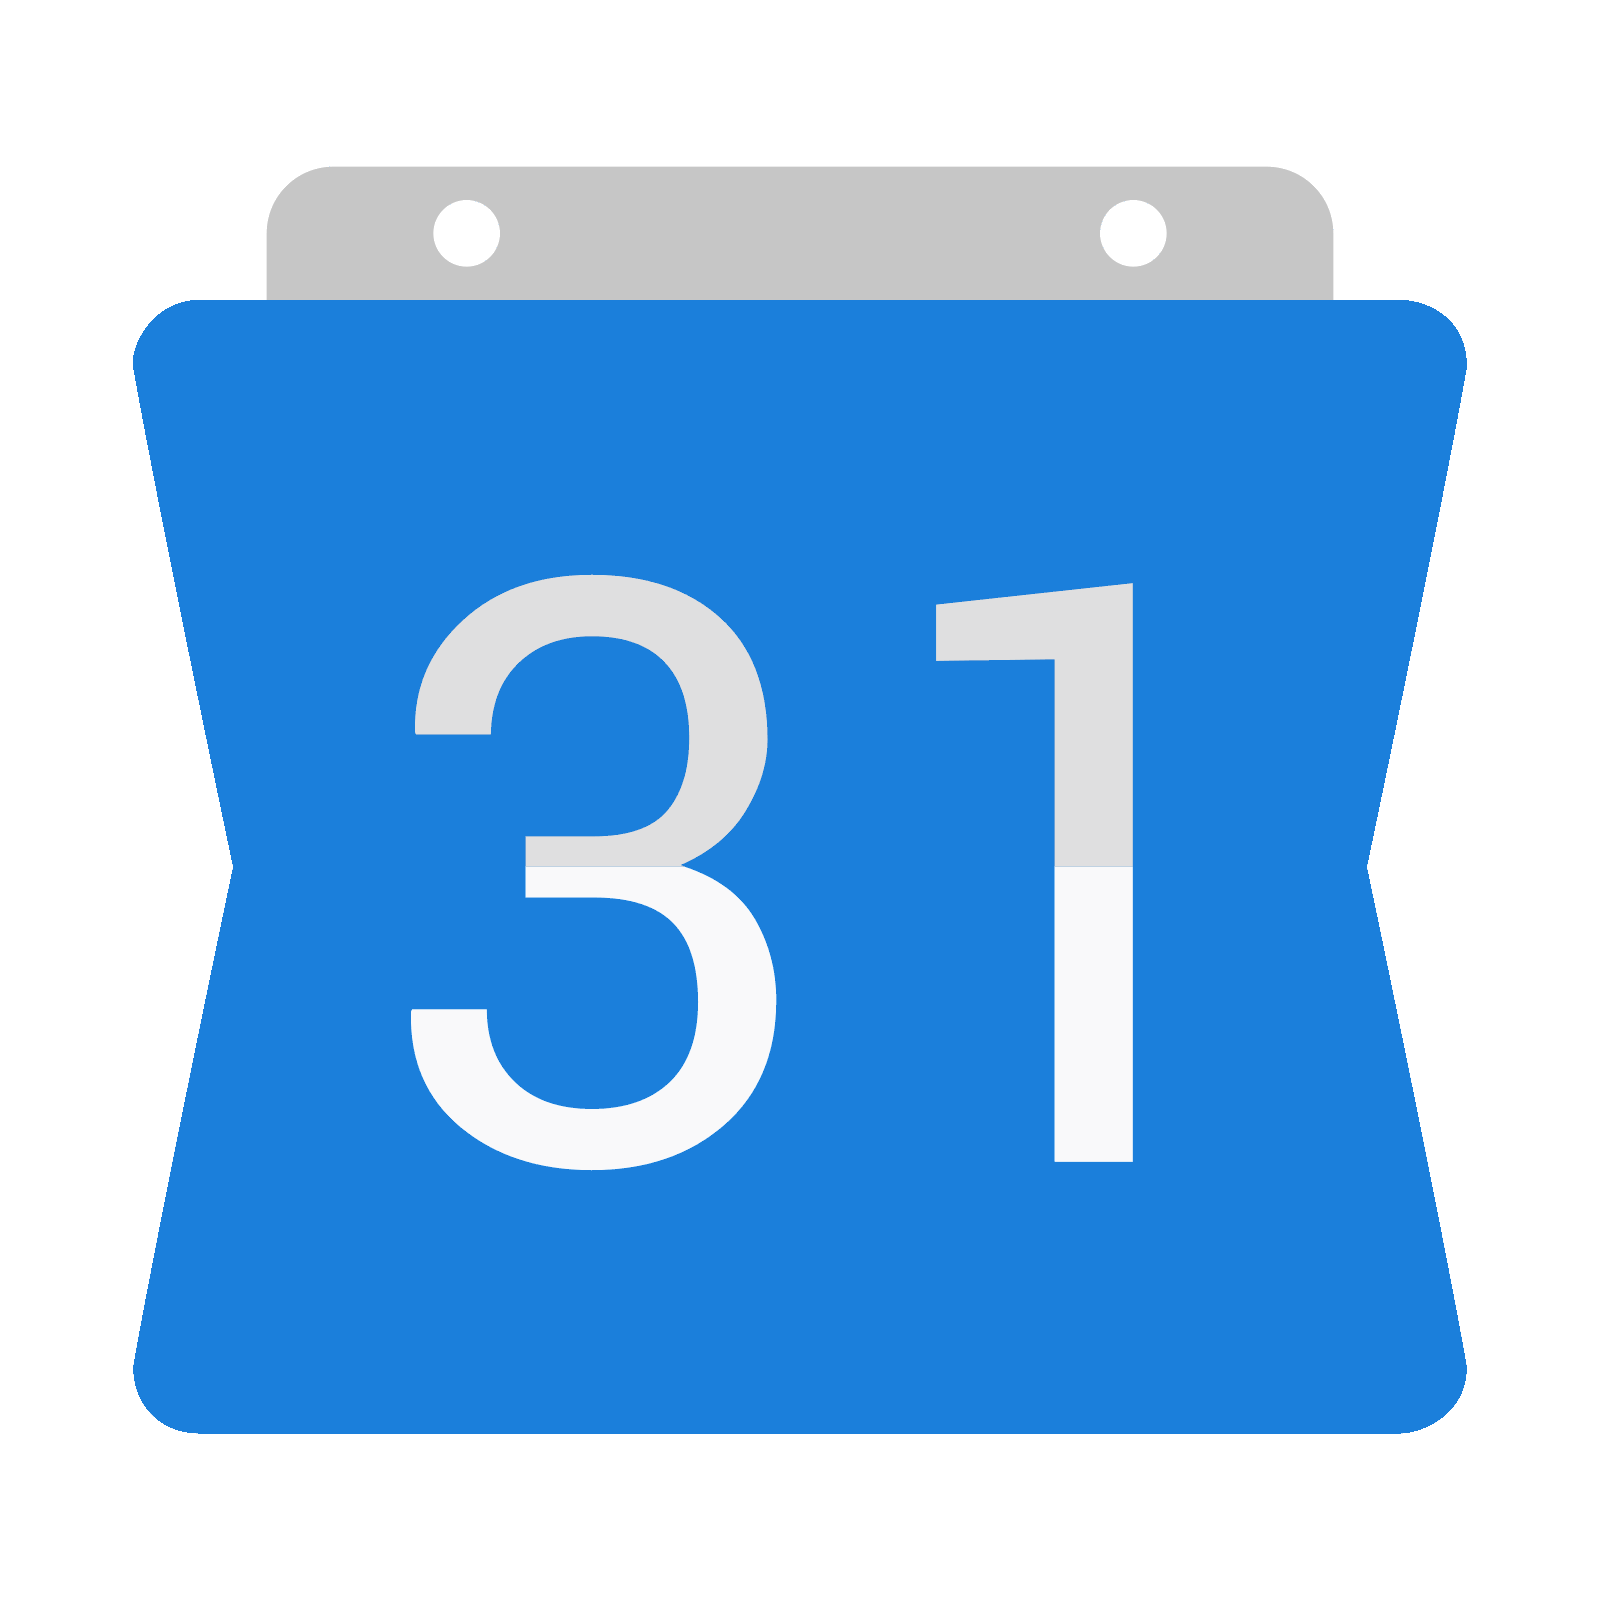 Google calendar icon png. Free download and vector